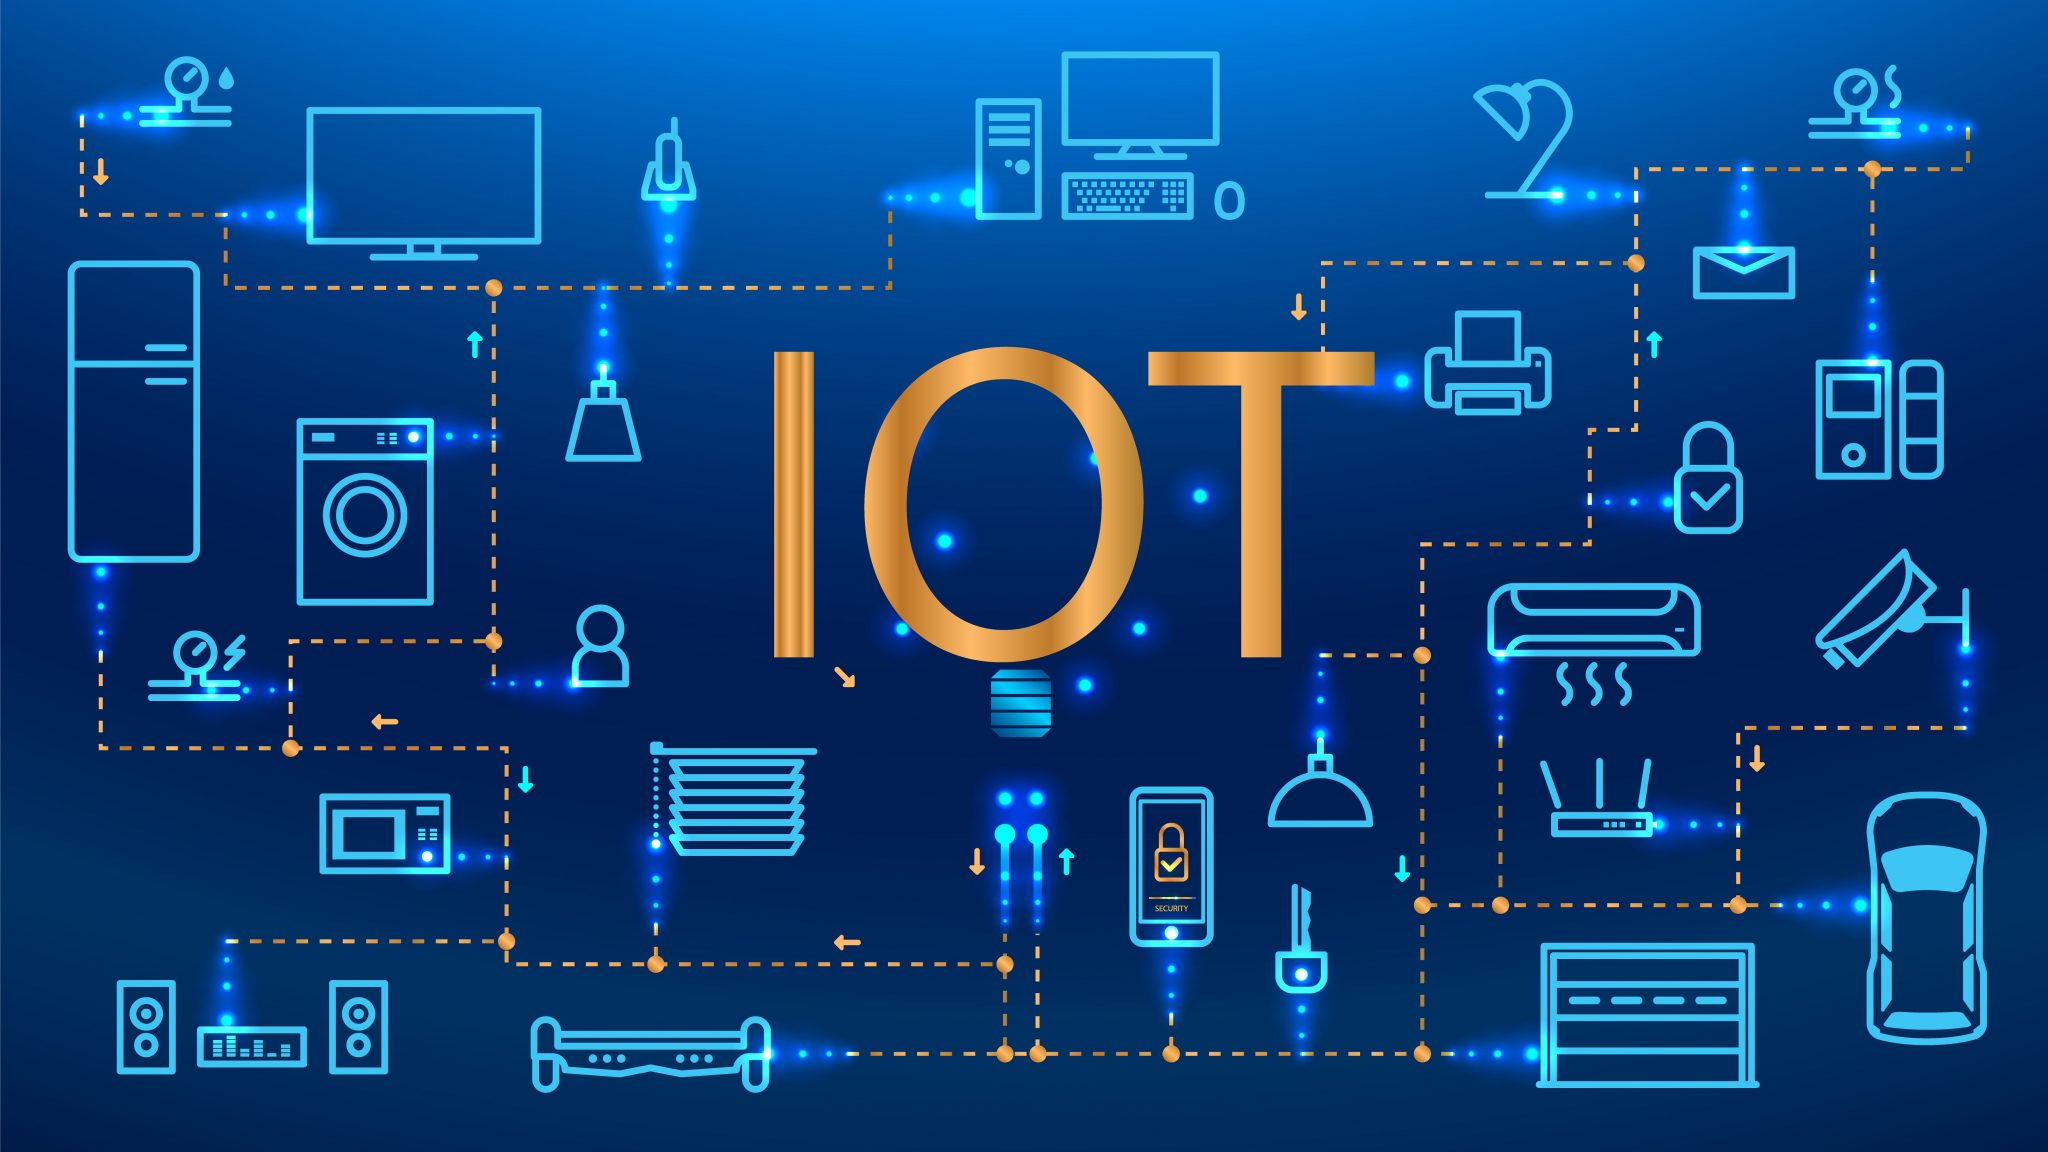 IoT: an introduction to the Internet of Things